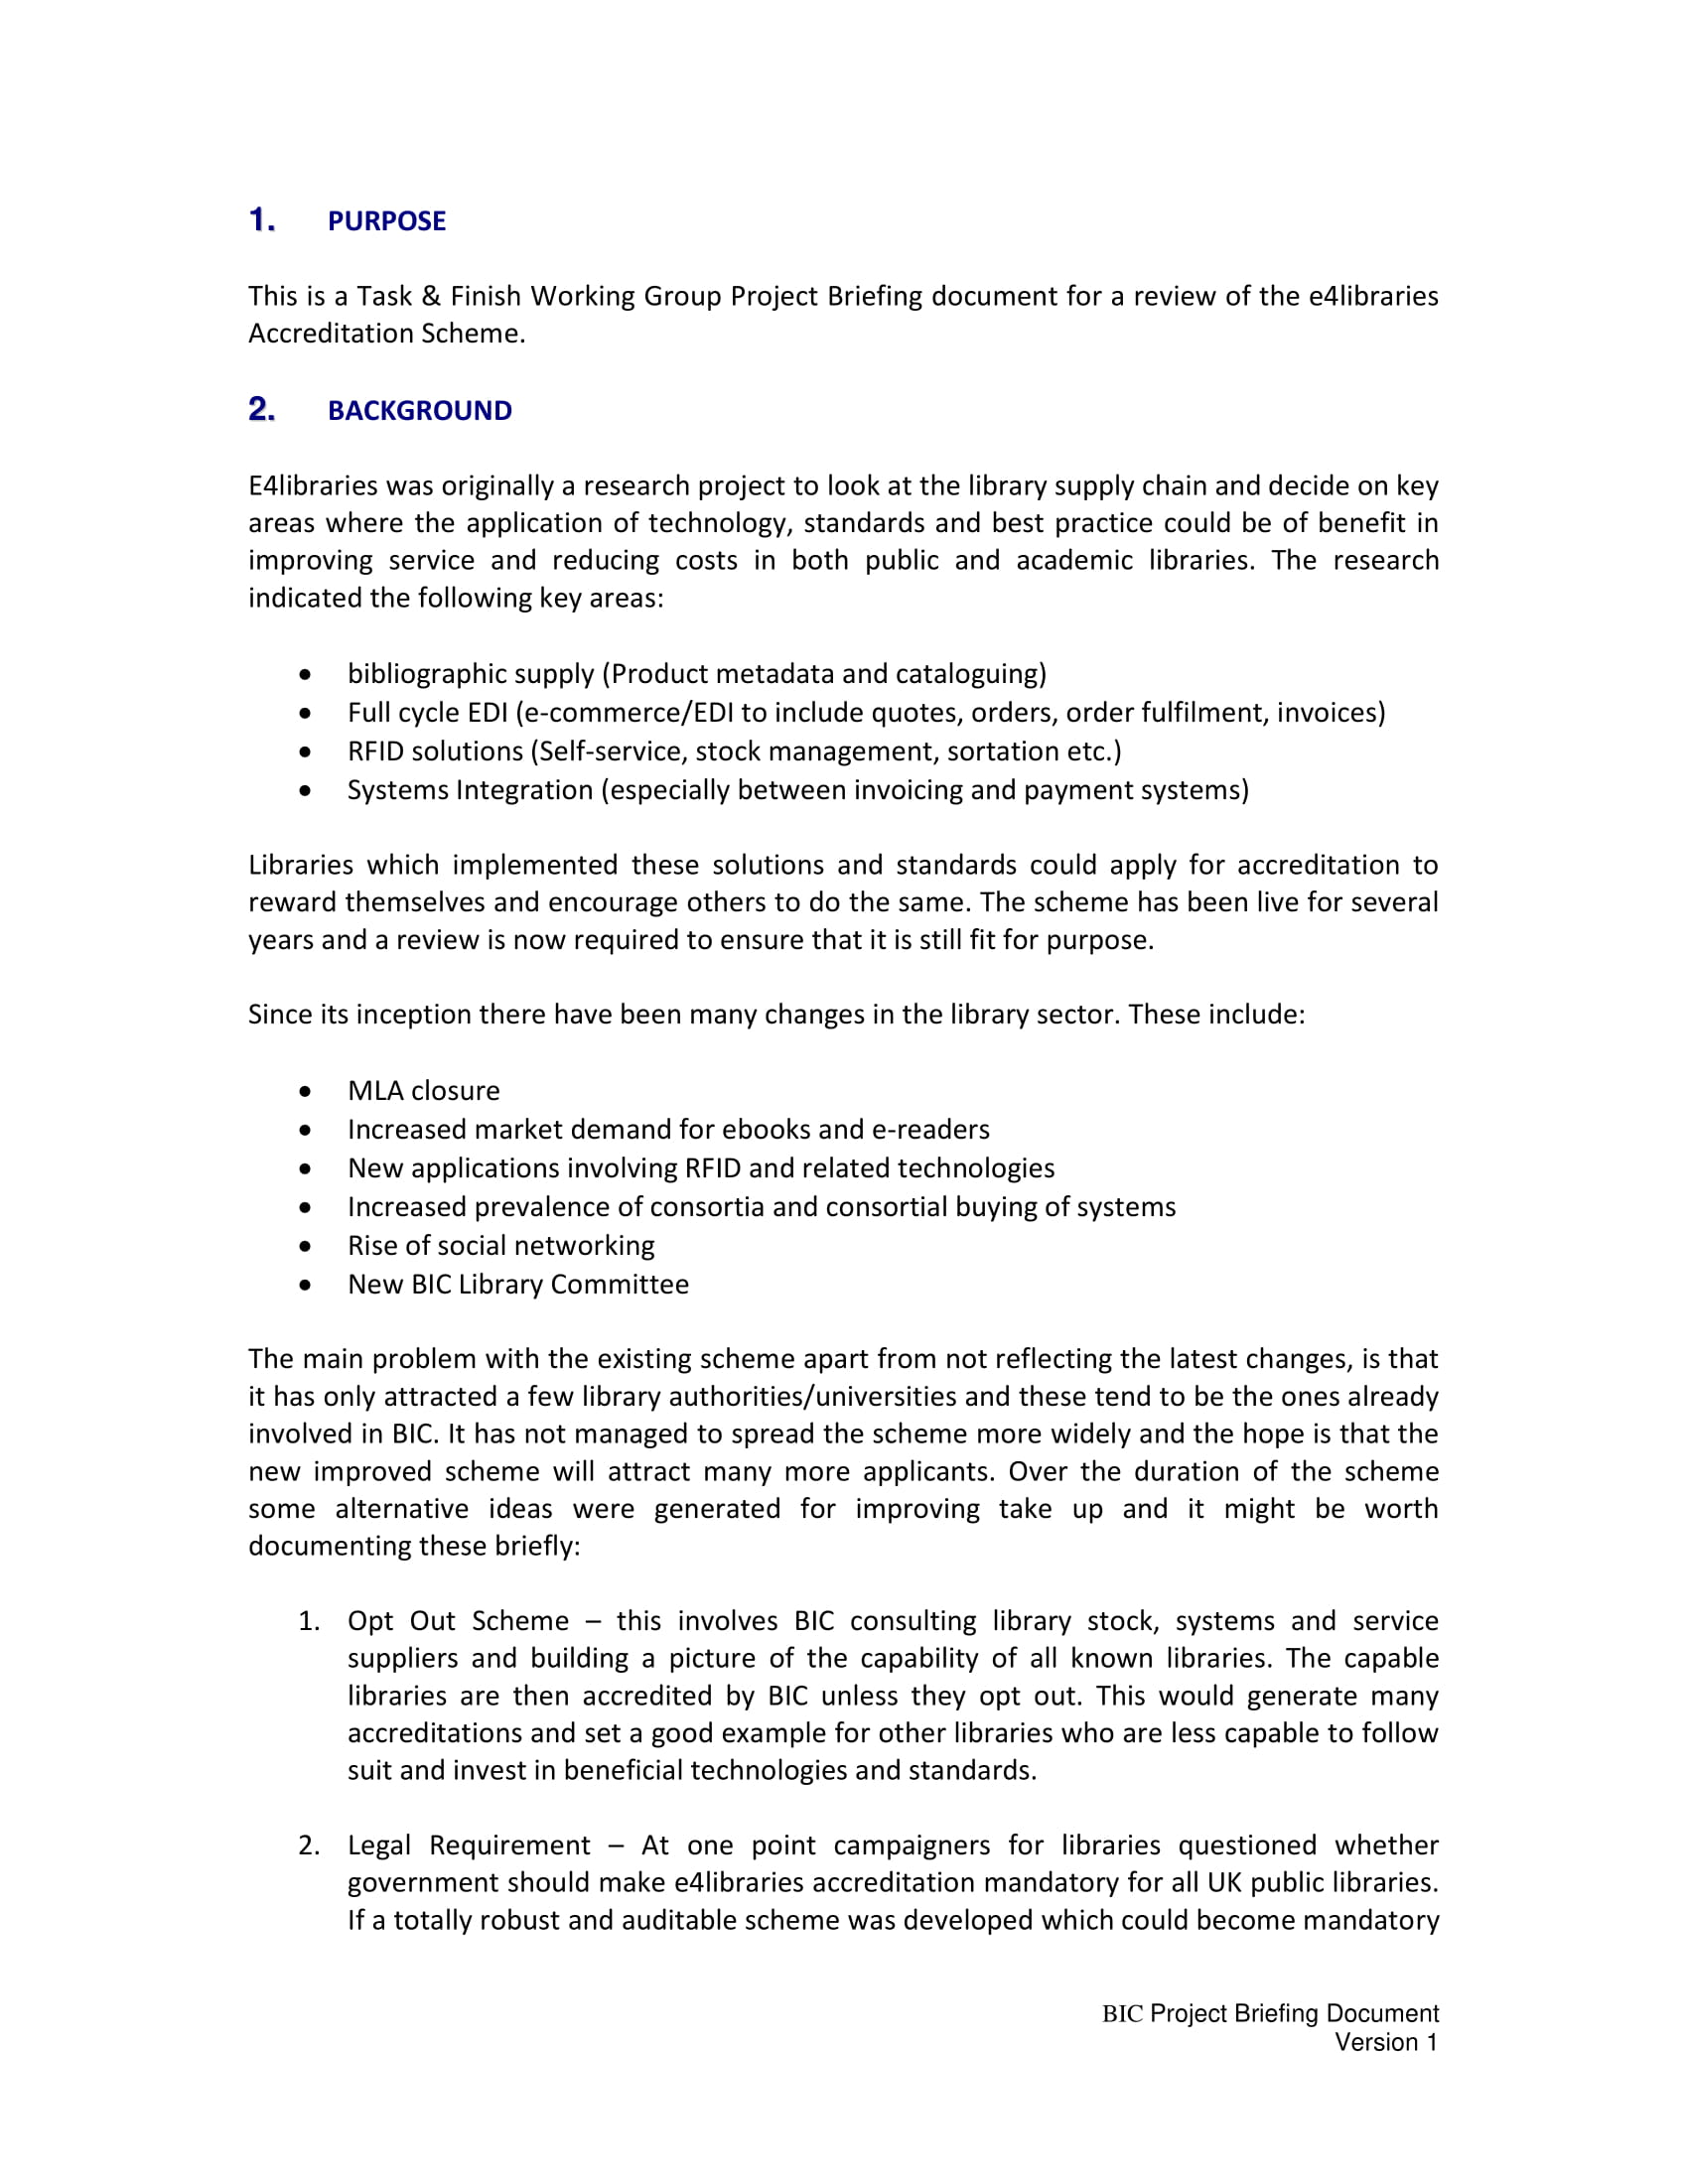 14 project brief examples pdf task and finish working group project brief example maxwellsz